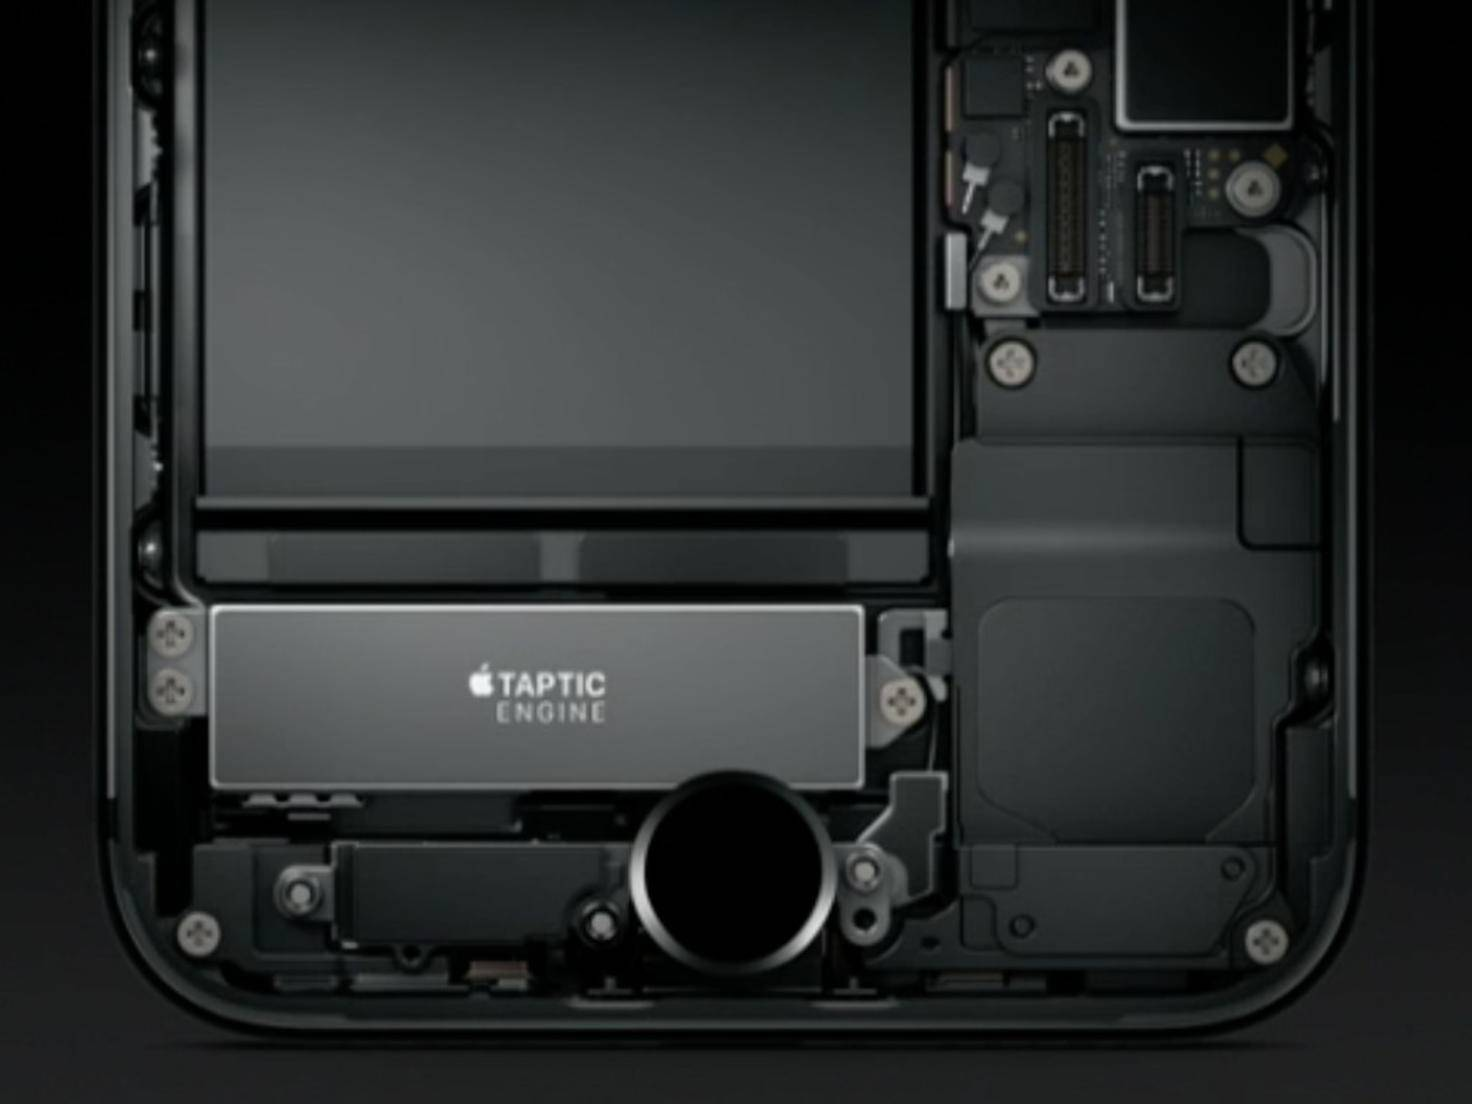 iPhone 7 Home Button Taptic Engine.jpg